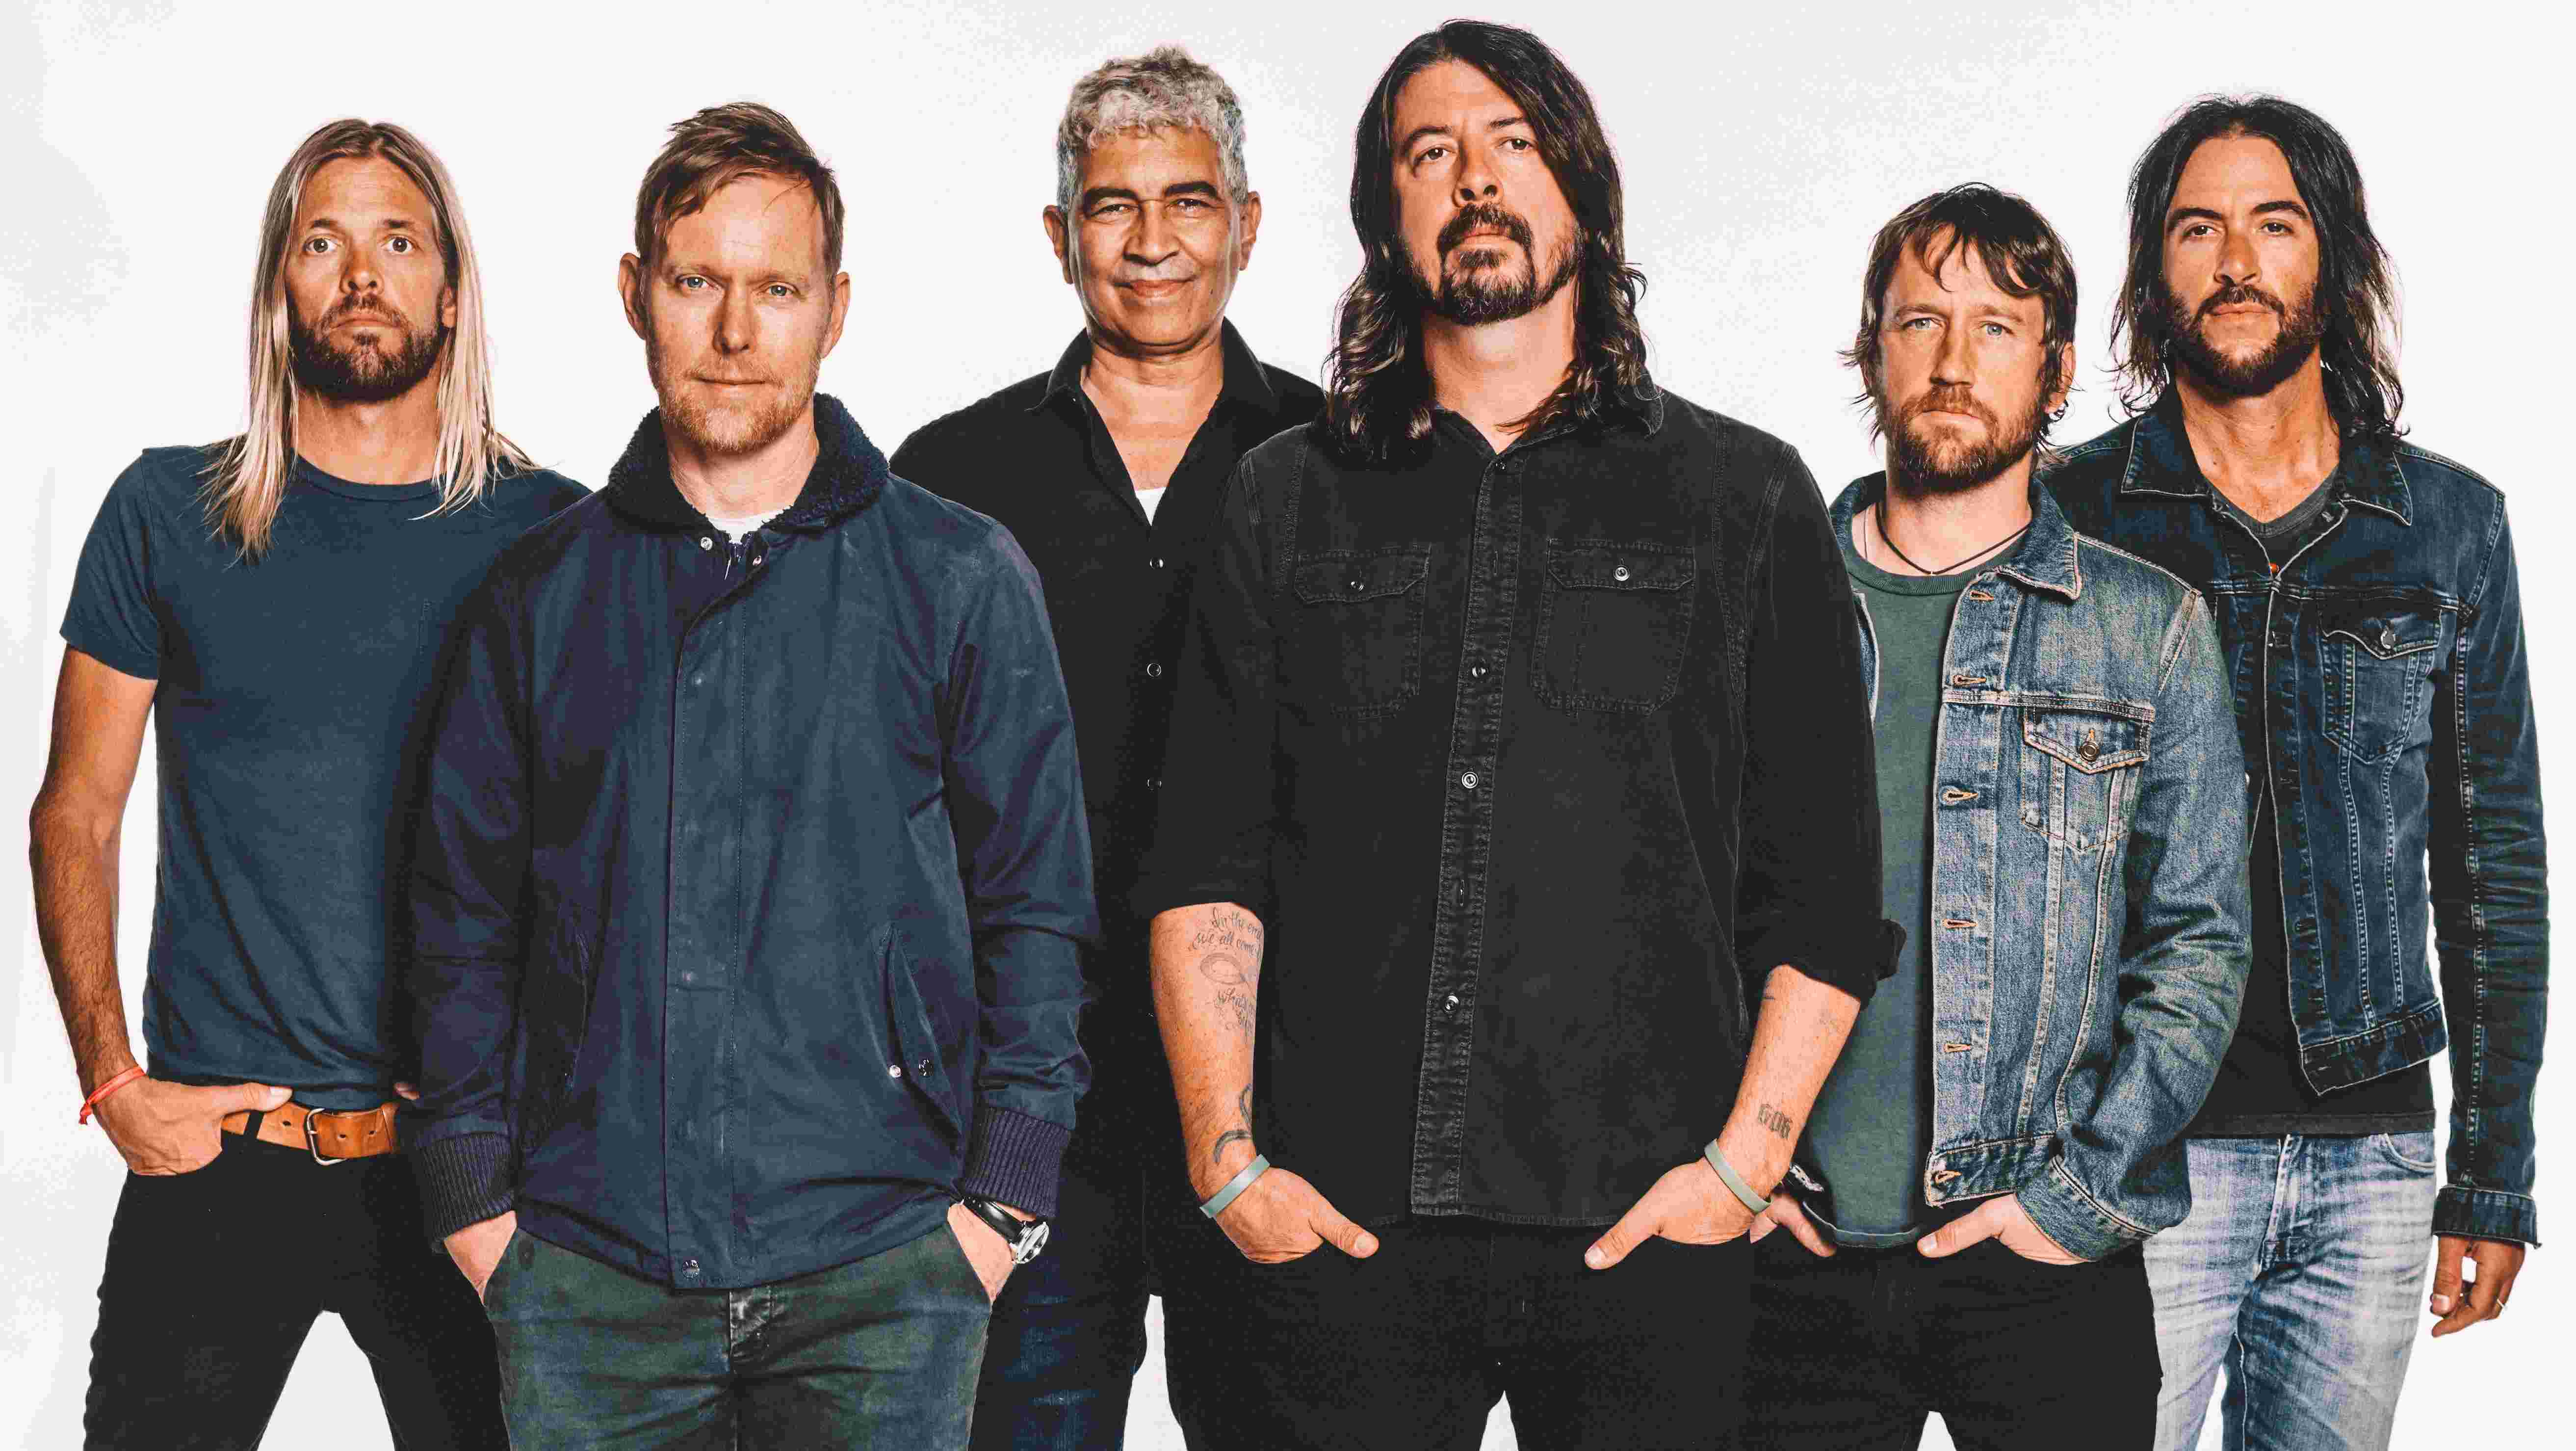 'Times Like Those': Foo Fighters kommentieren alte Fotos